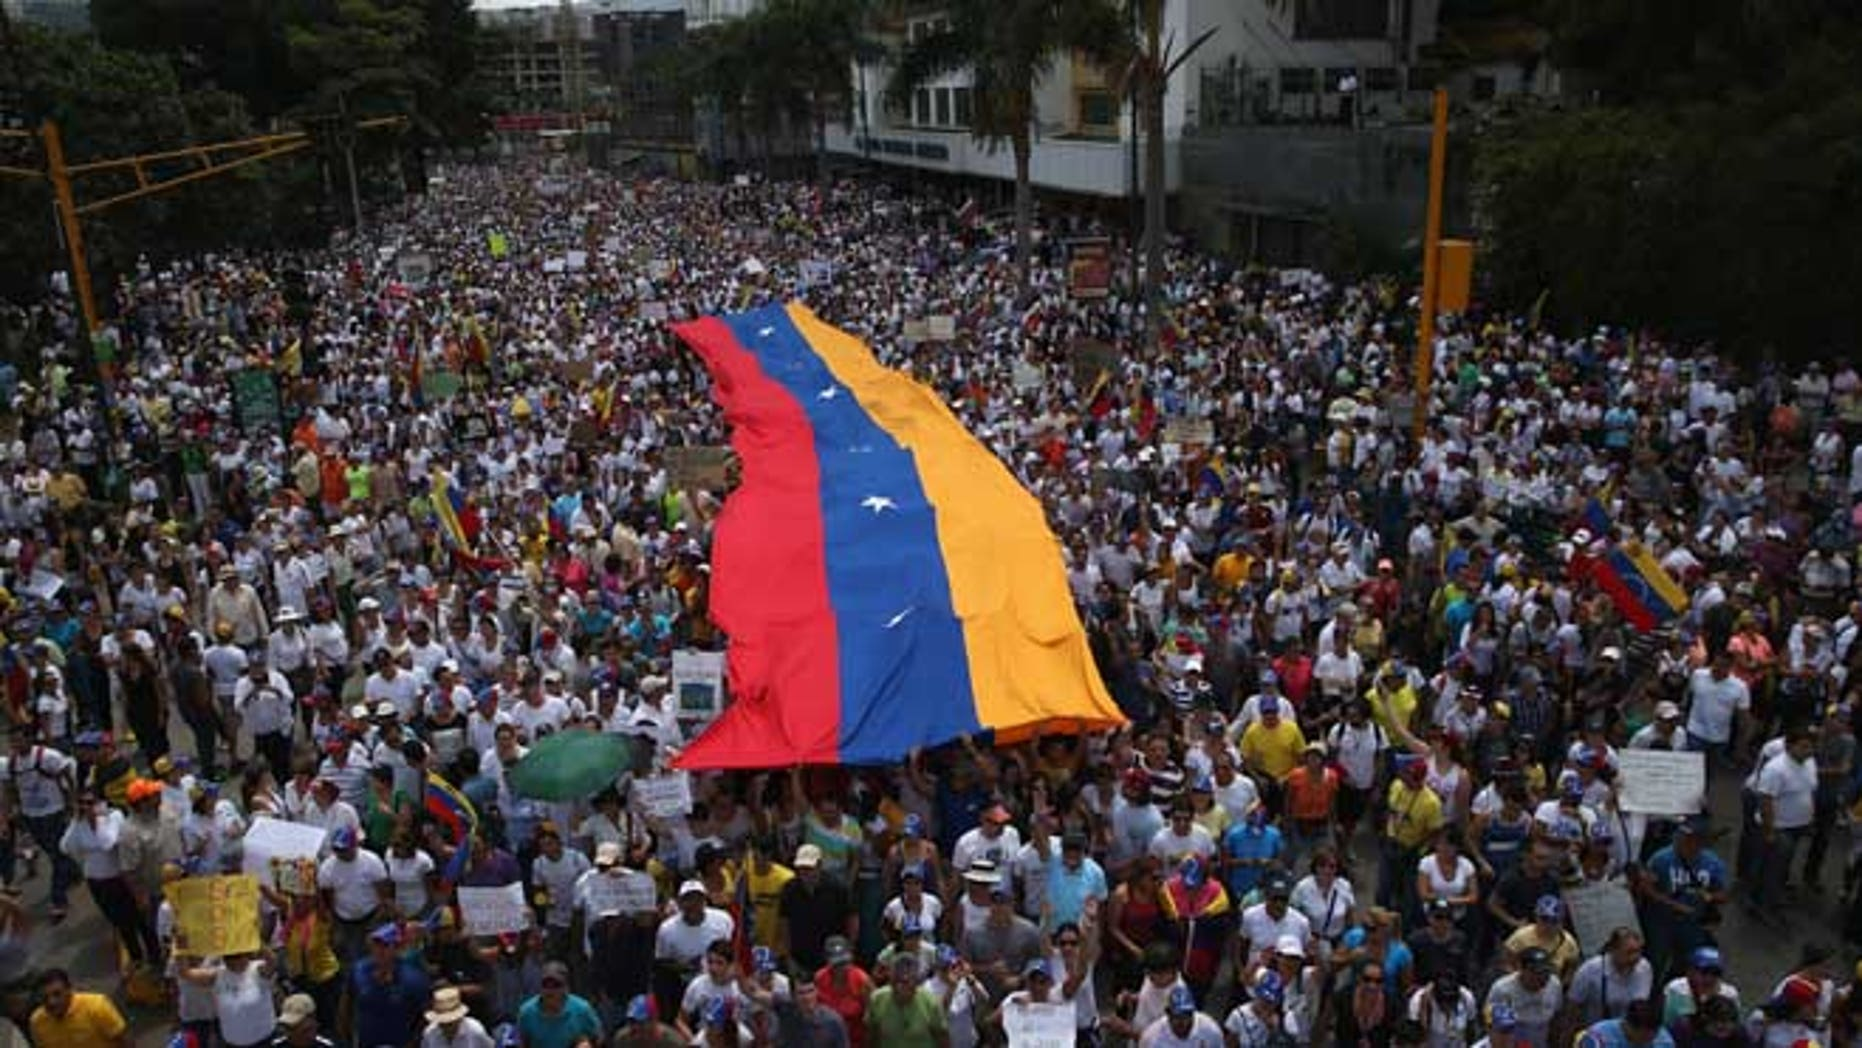 Anti-government protesters in Caracas, Venezuela. (Photo by John Moore/Getty Images)